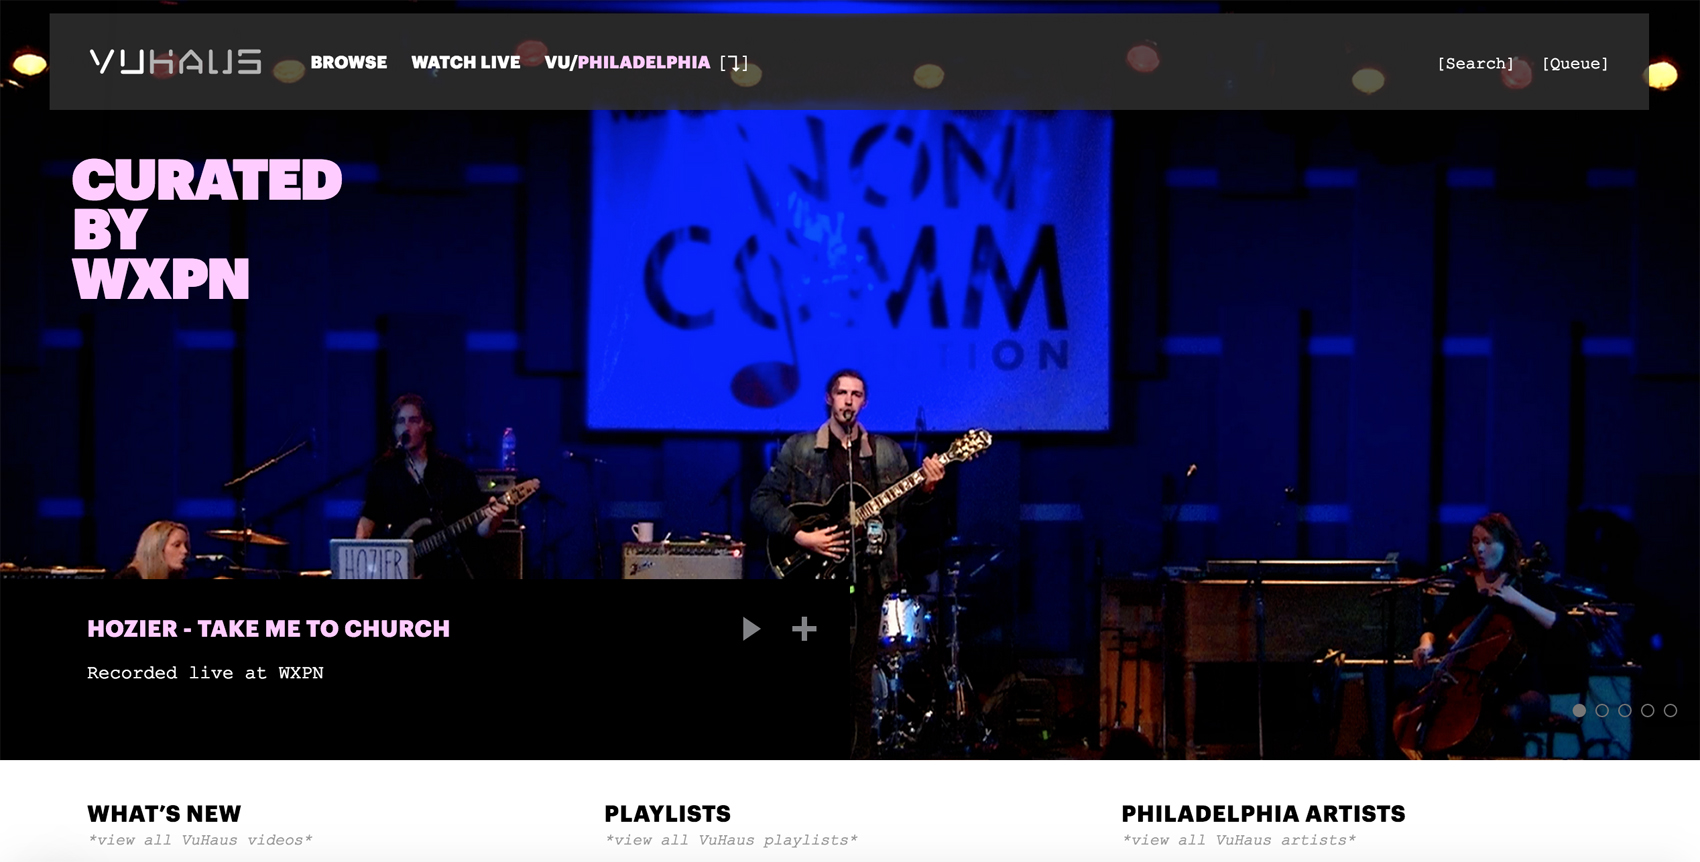 Discover rare live music performances with the new VuHaus app